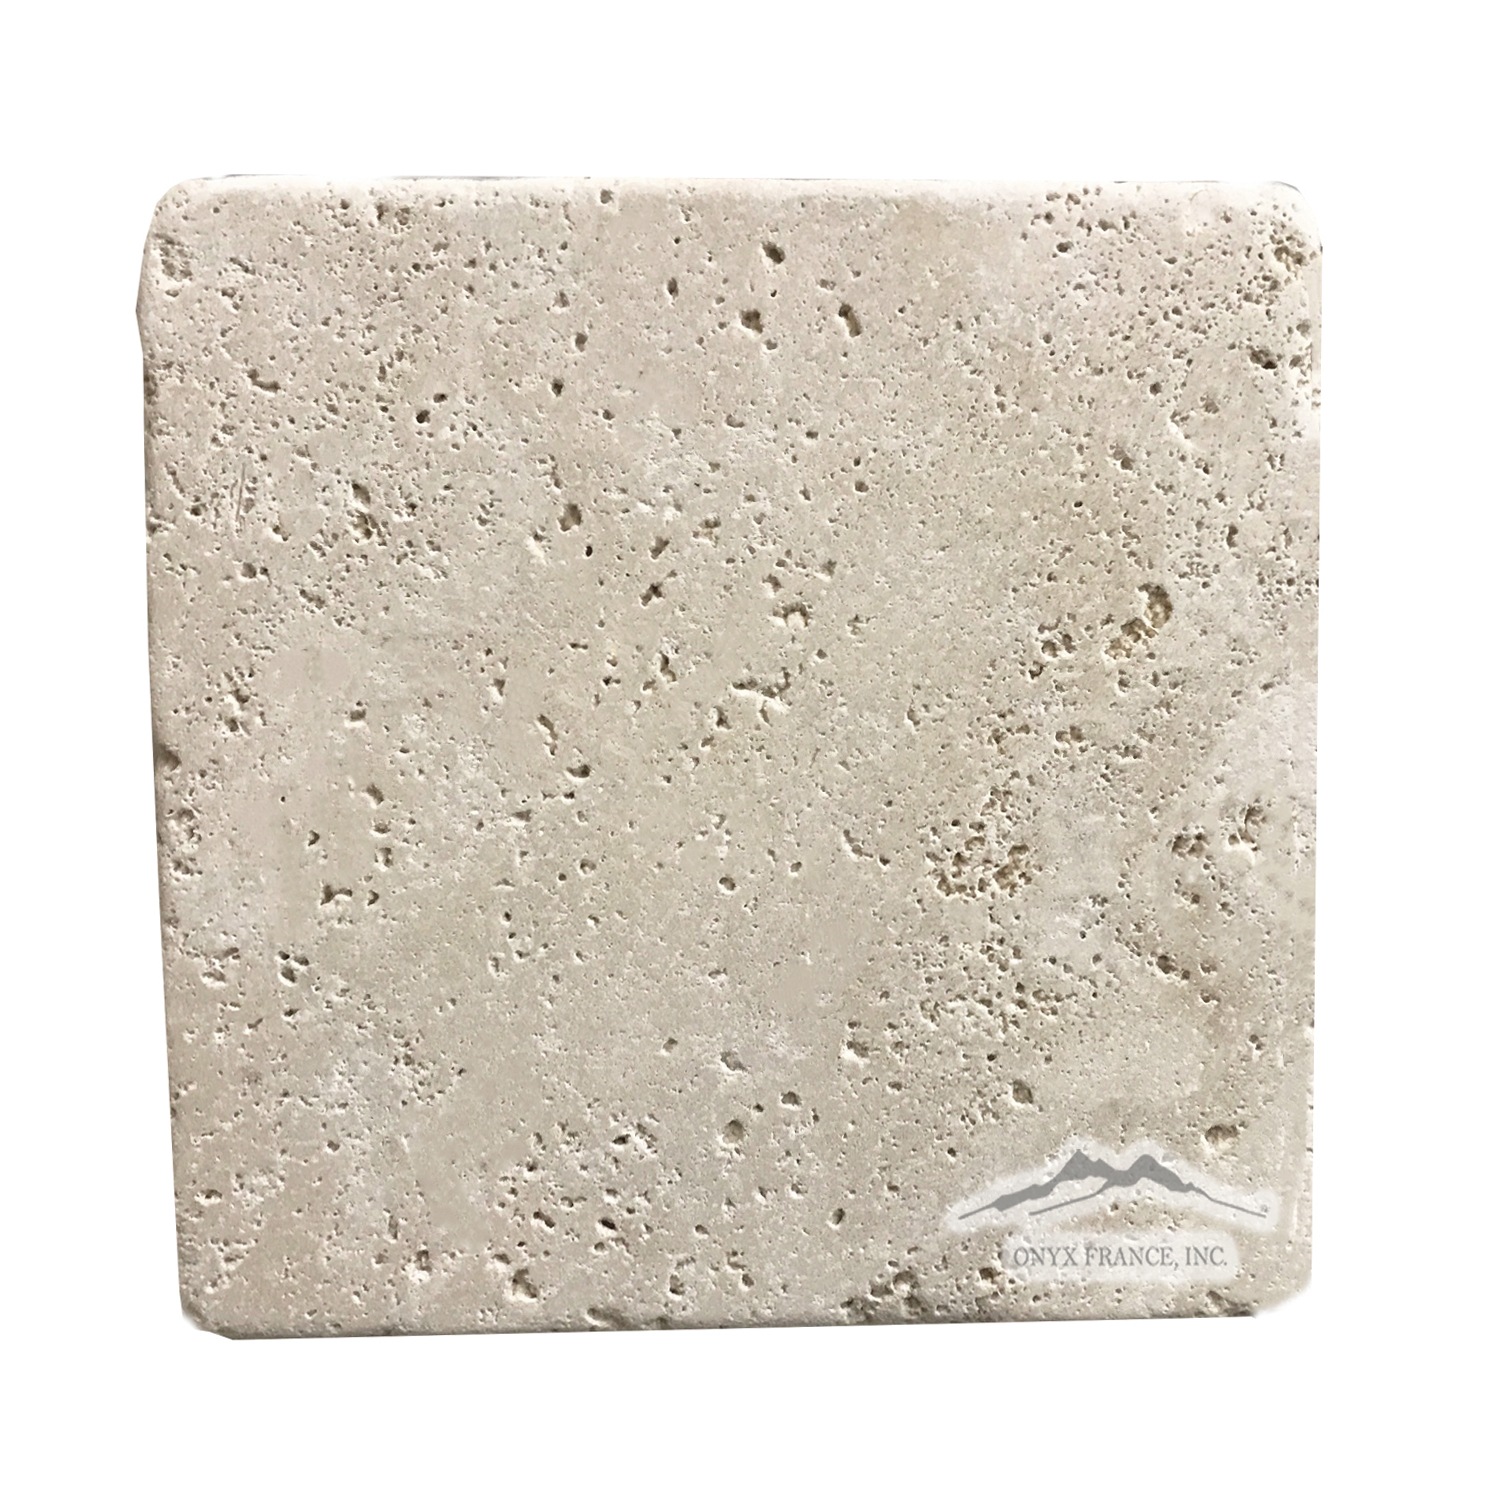 "Beige Antique Travertine 6"" x 6"" Tile Tumbled"